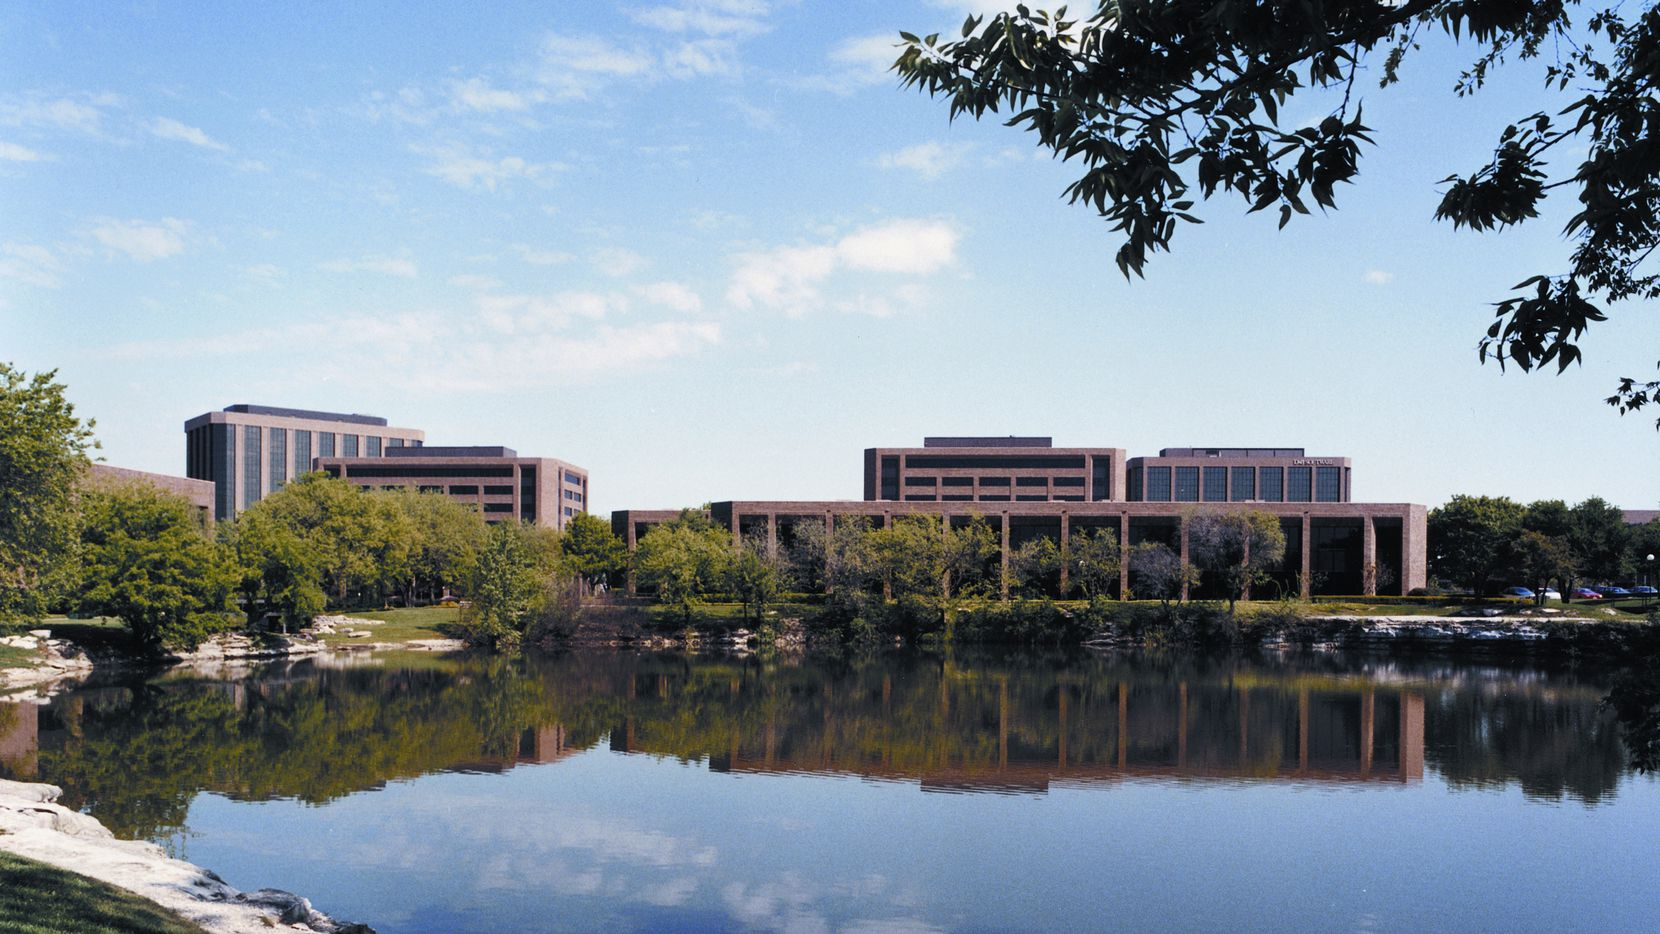 New apartments and retail would replace some of the office buildings around the lake in The Centre office park on Midway Road. (File Photo)